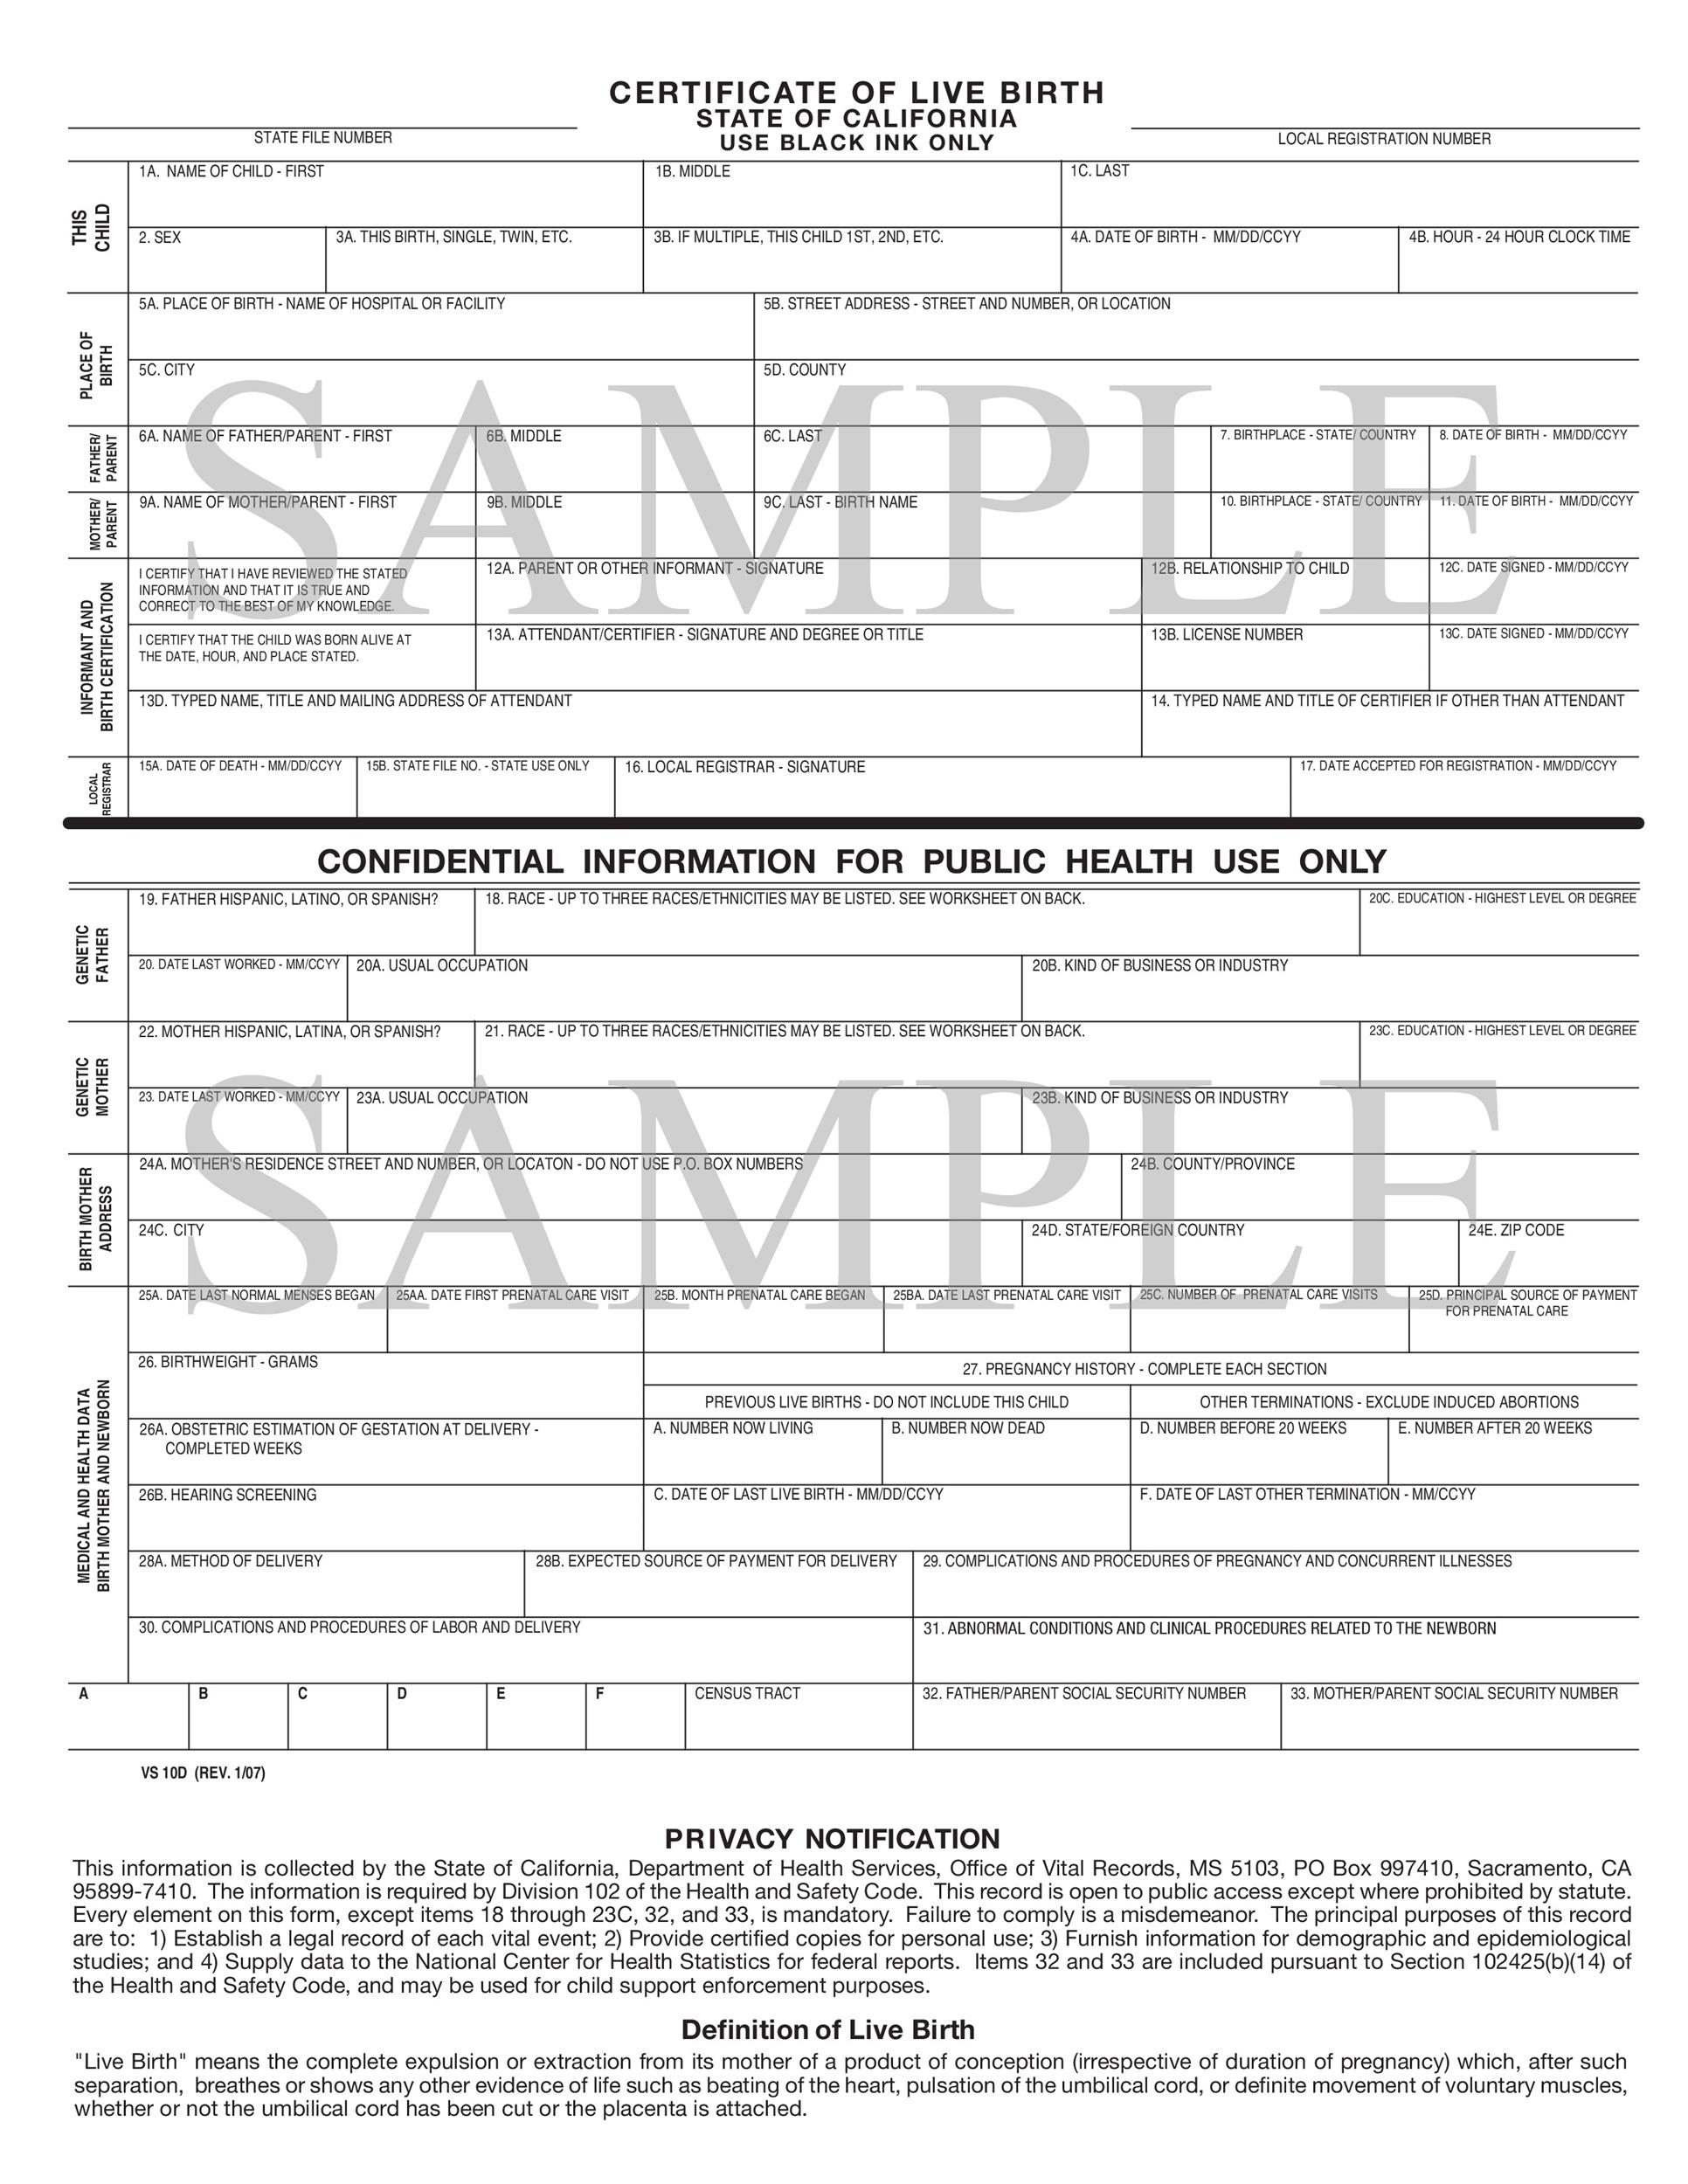 15 Birth Certificate Templates (Word & Pdf) - Template Lab